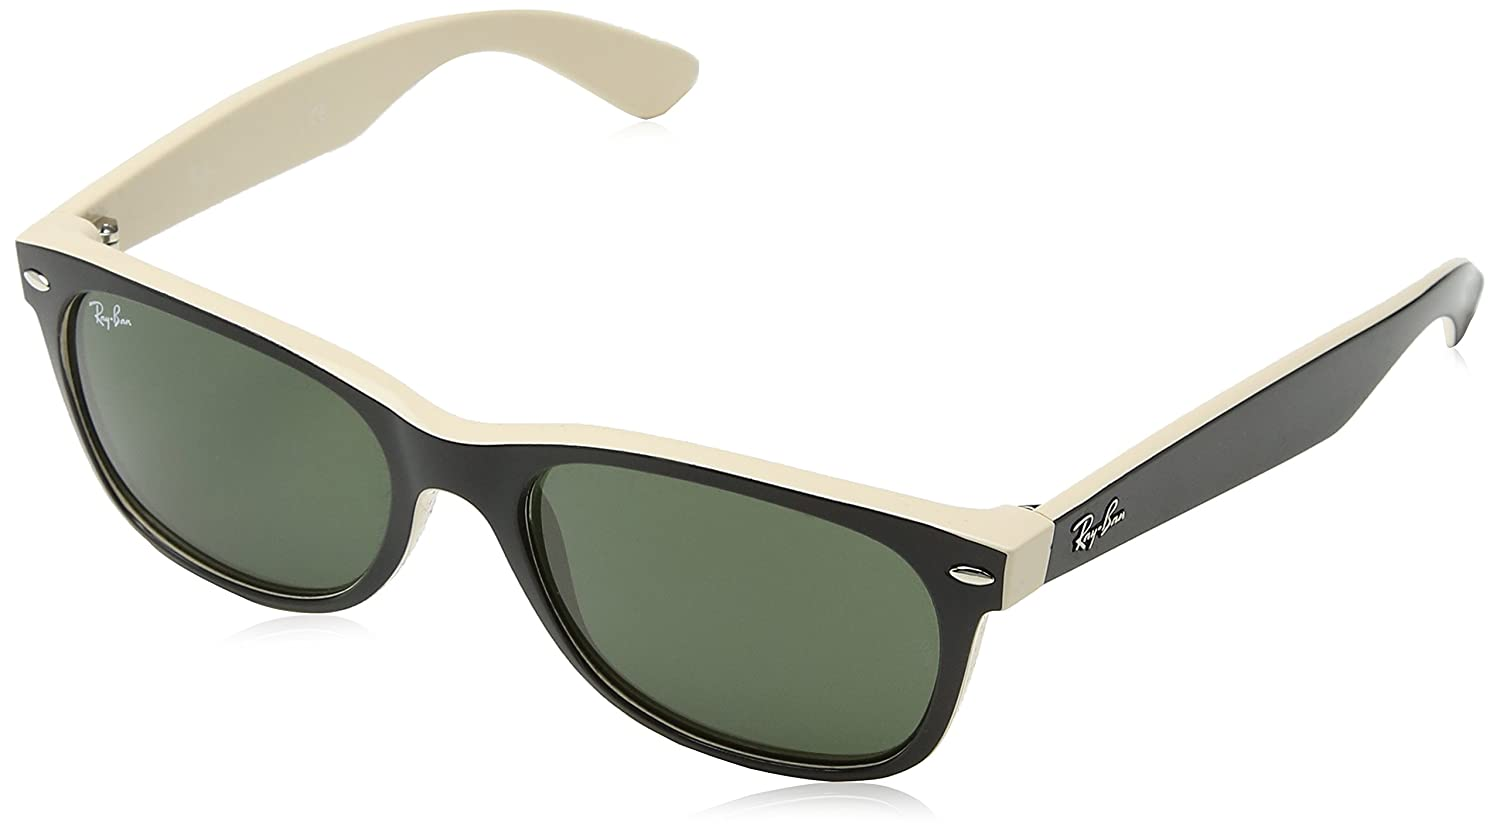 1a2113c023 Amazon.com  Ray-Ban New Wayfarer RB2132 Sunglasses-875 Black On  Beige Crystal Green-55mm  Ray-Ban  Clothing